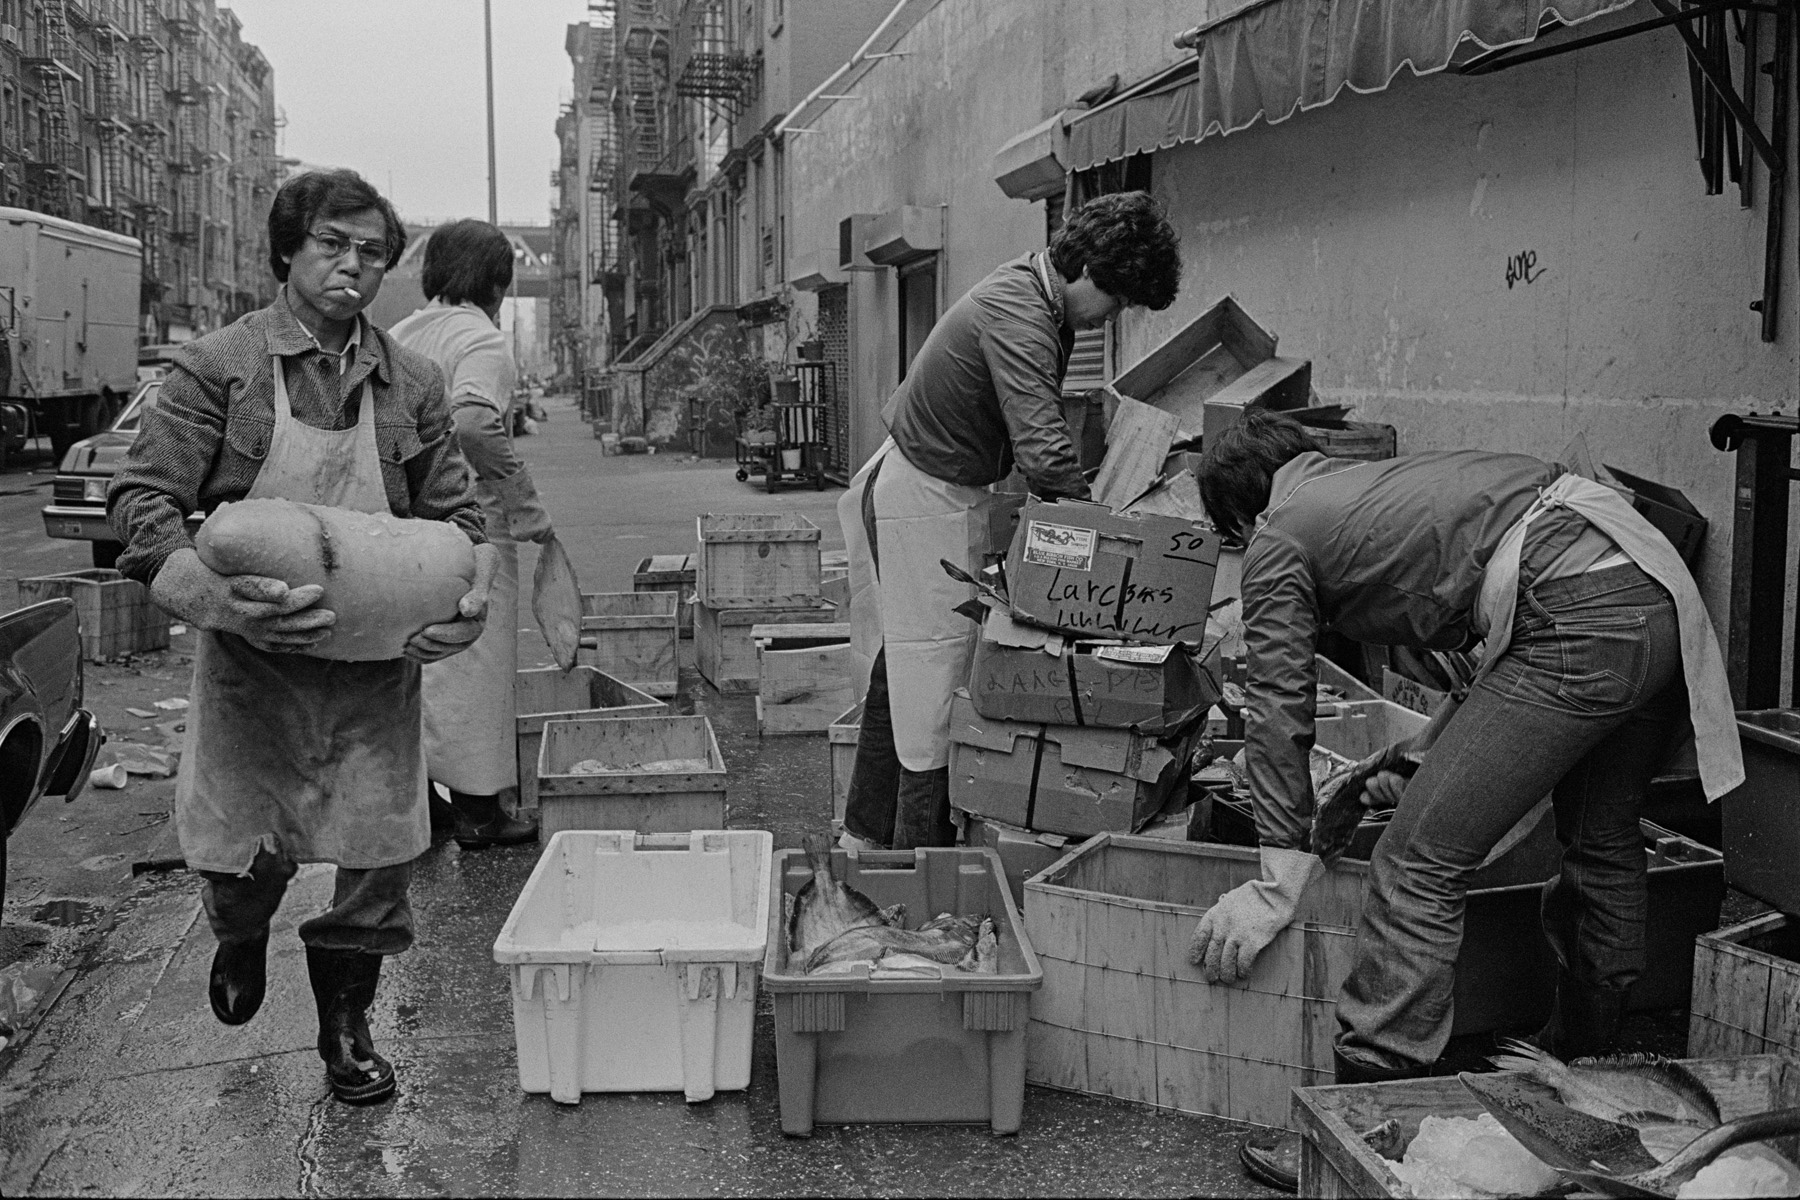 Men working outside on the sidewalk at Catherine and Henry St., New York Chinatown, 1982. On the left side a man smoking a cigarette carries a bag of scallops while other men sort through boxes of seefod. Looking down Henry St. toward the Manhattan Bridge.